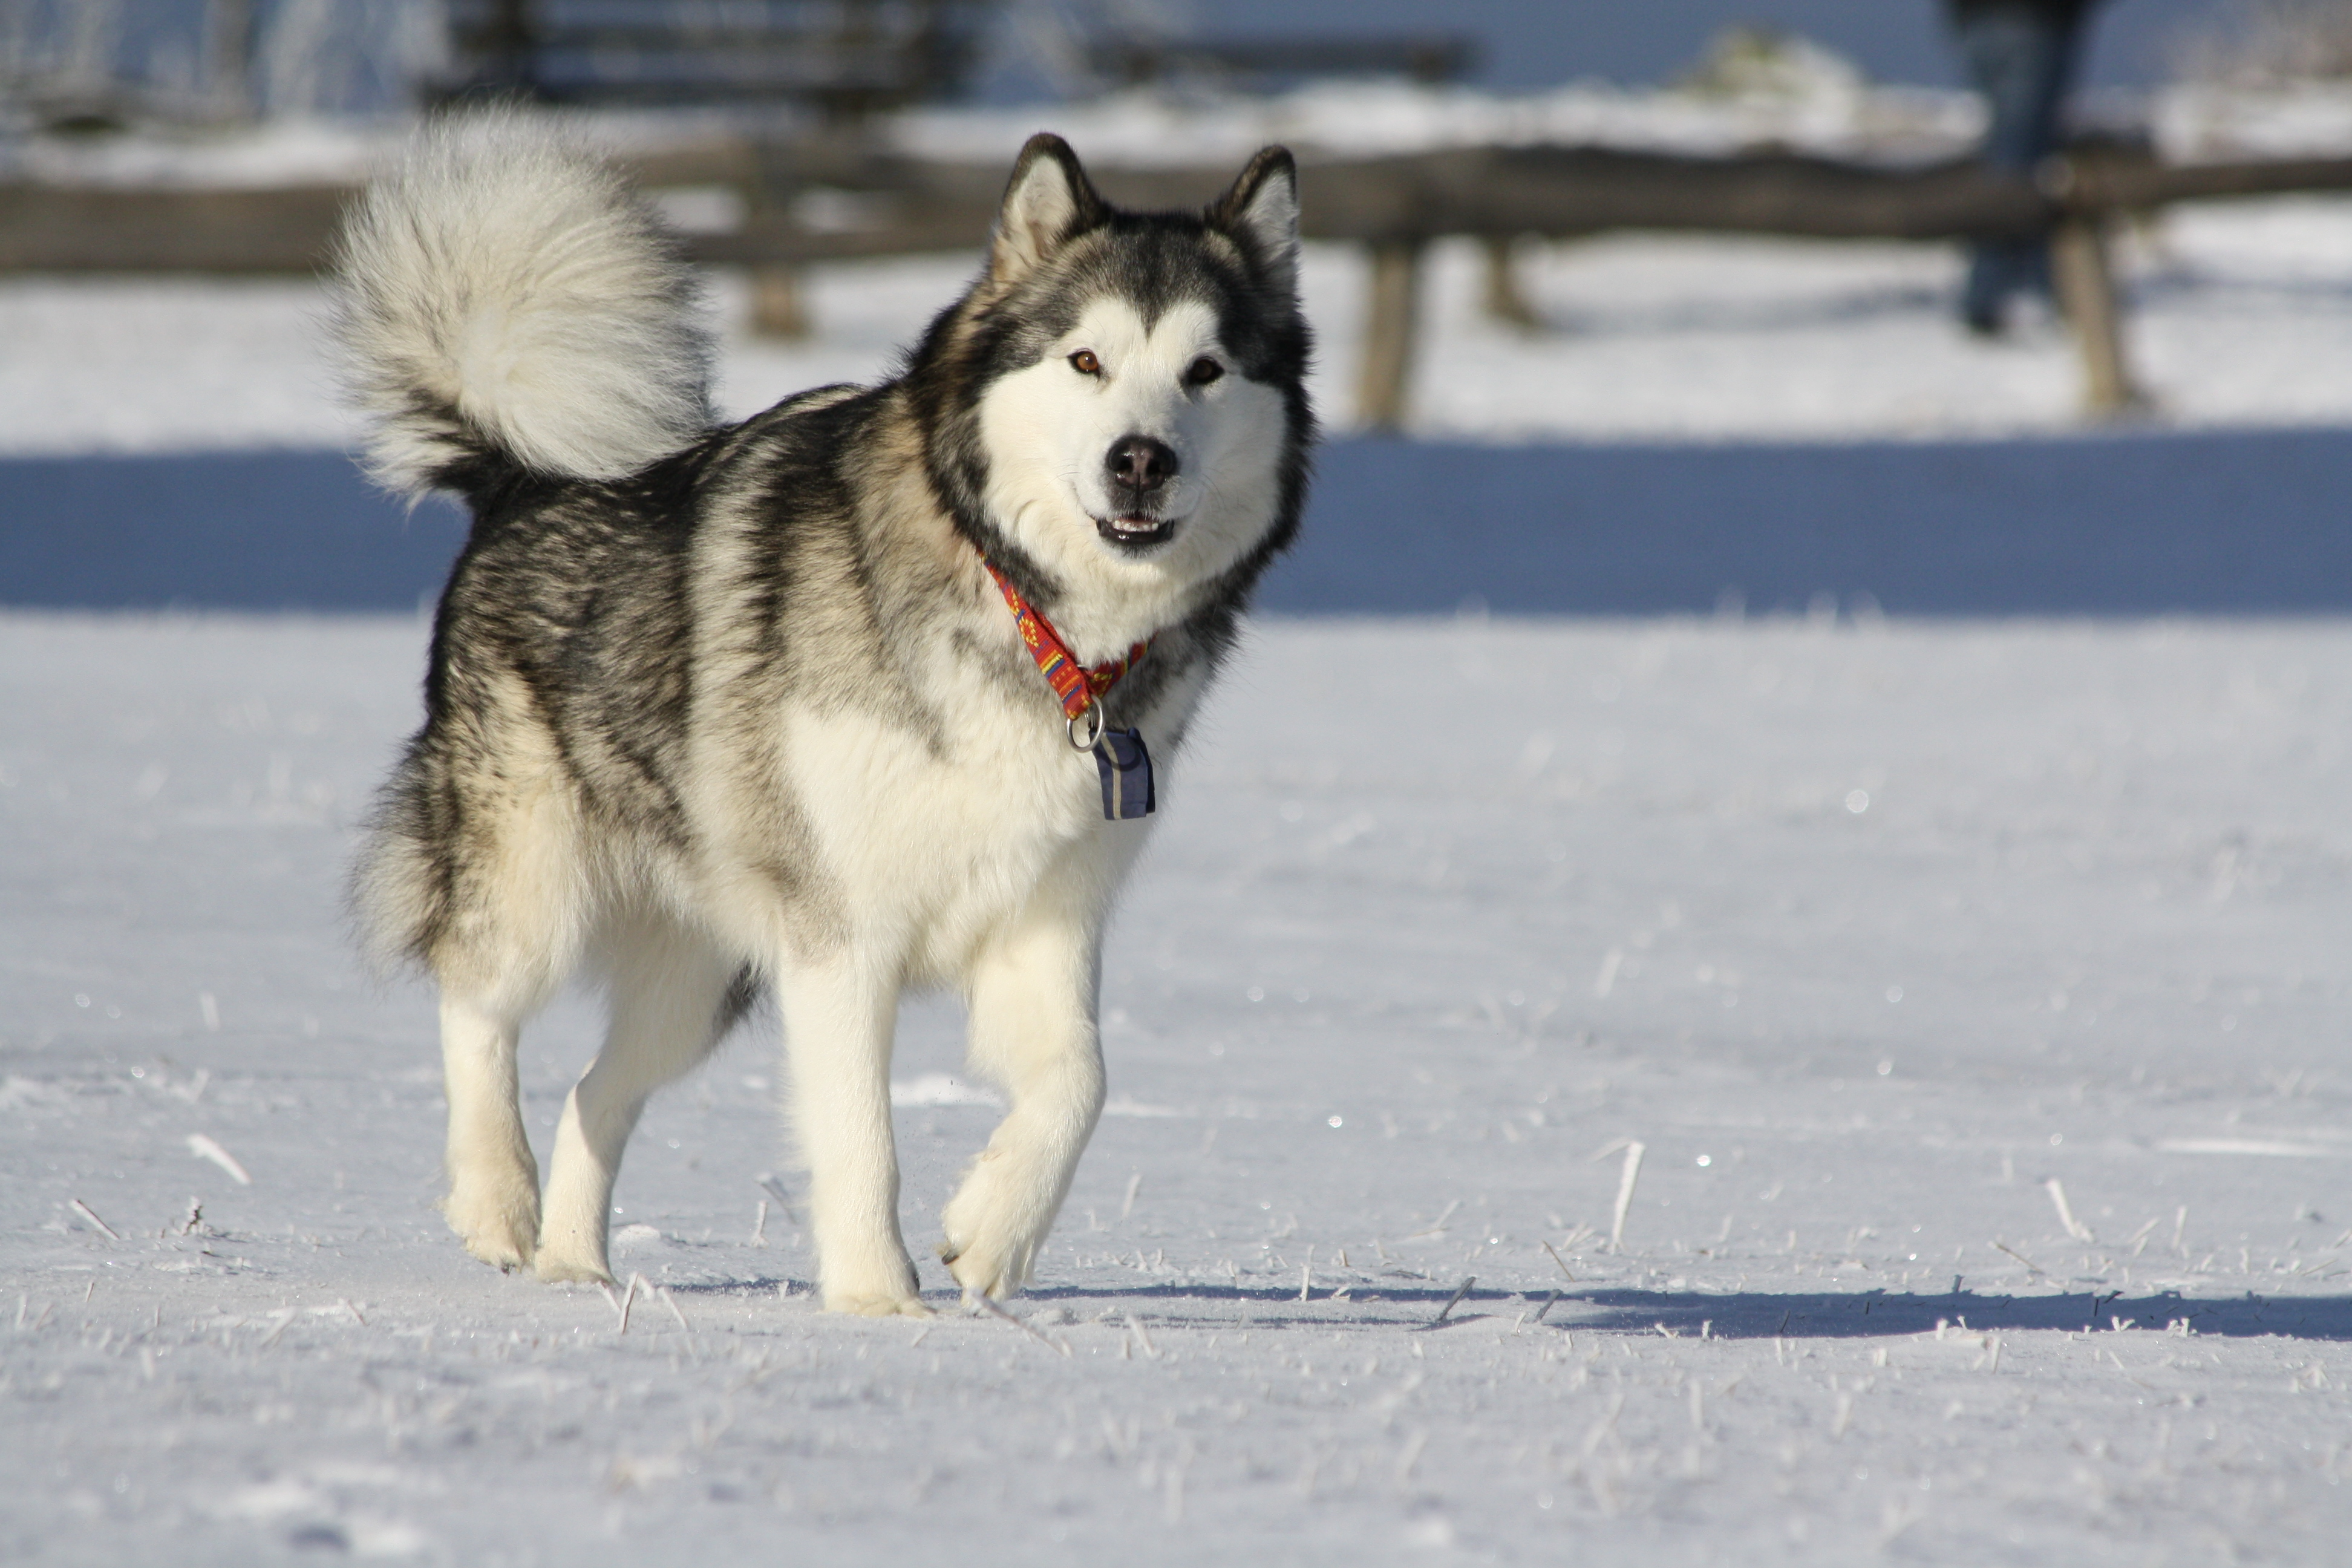 Alaskan Malamute dog playing in the snow.